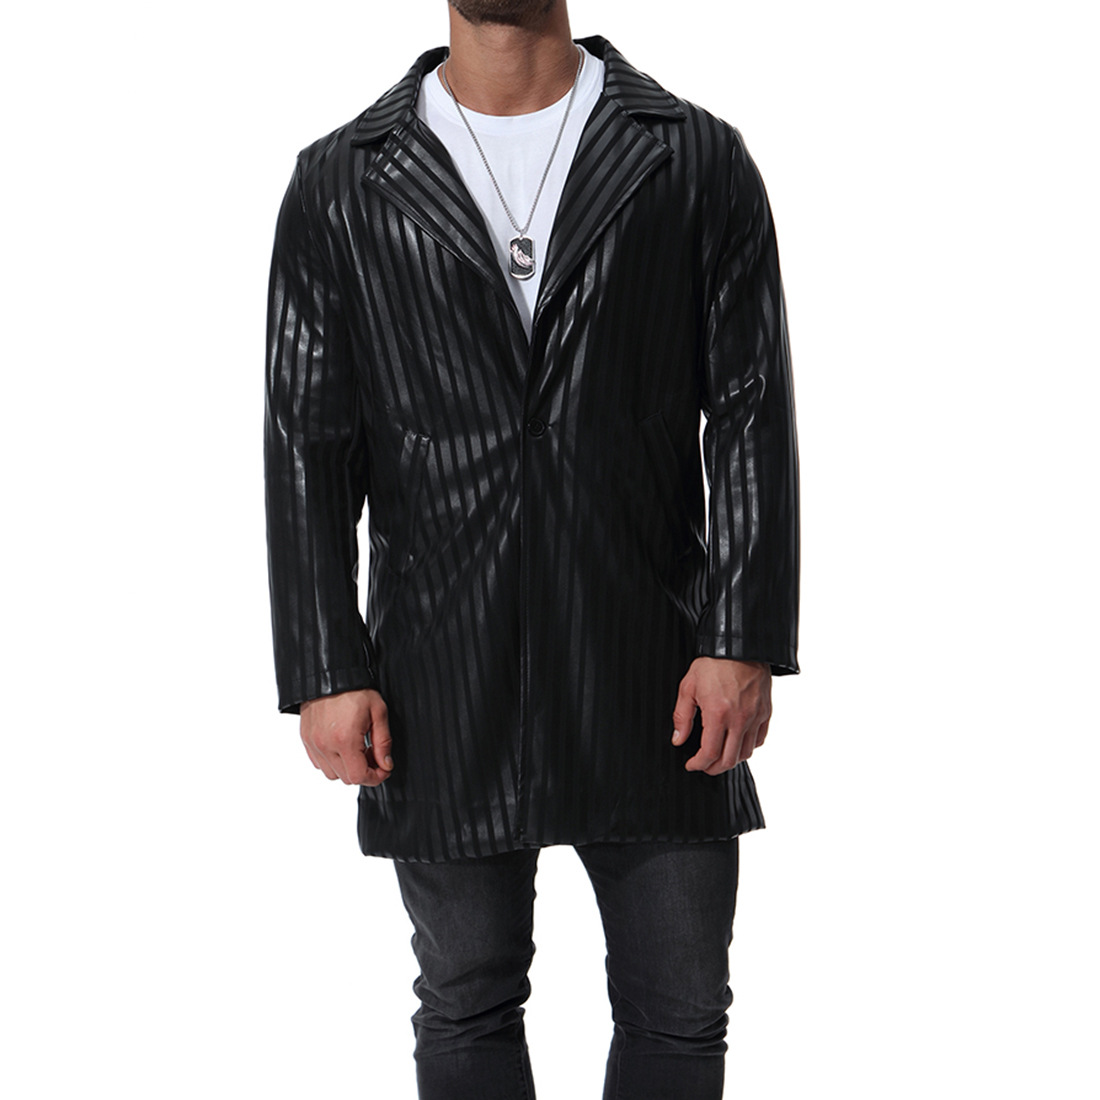 MarKyi new arrival striped mens long leather jacket coat 2018 good quality sleeve jaqueta masculina de couro